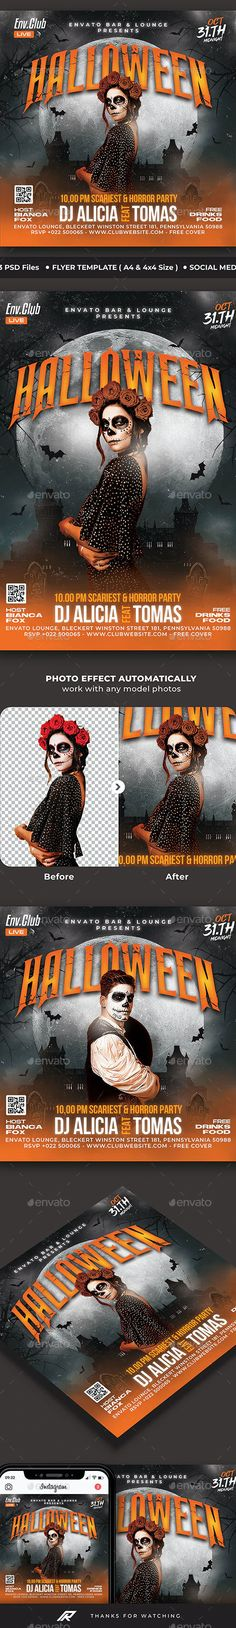 Halloween Flyer by Rhends   GraphicRiver